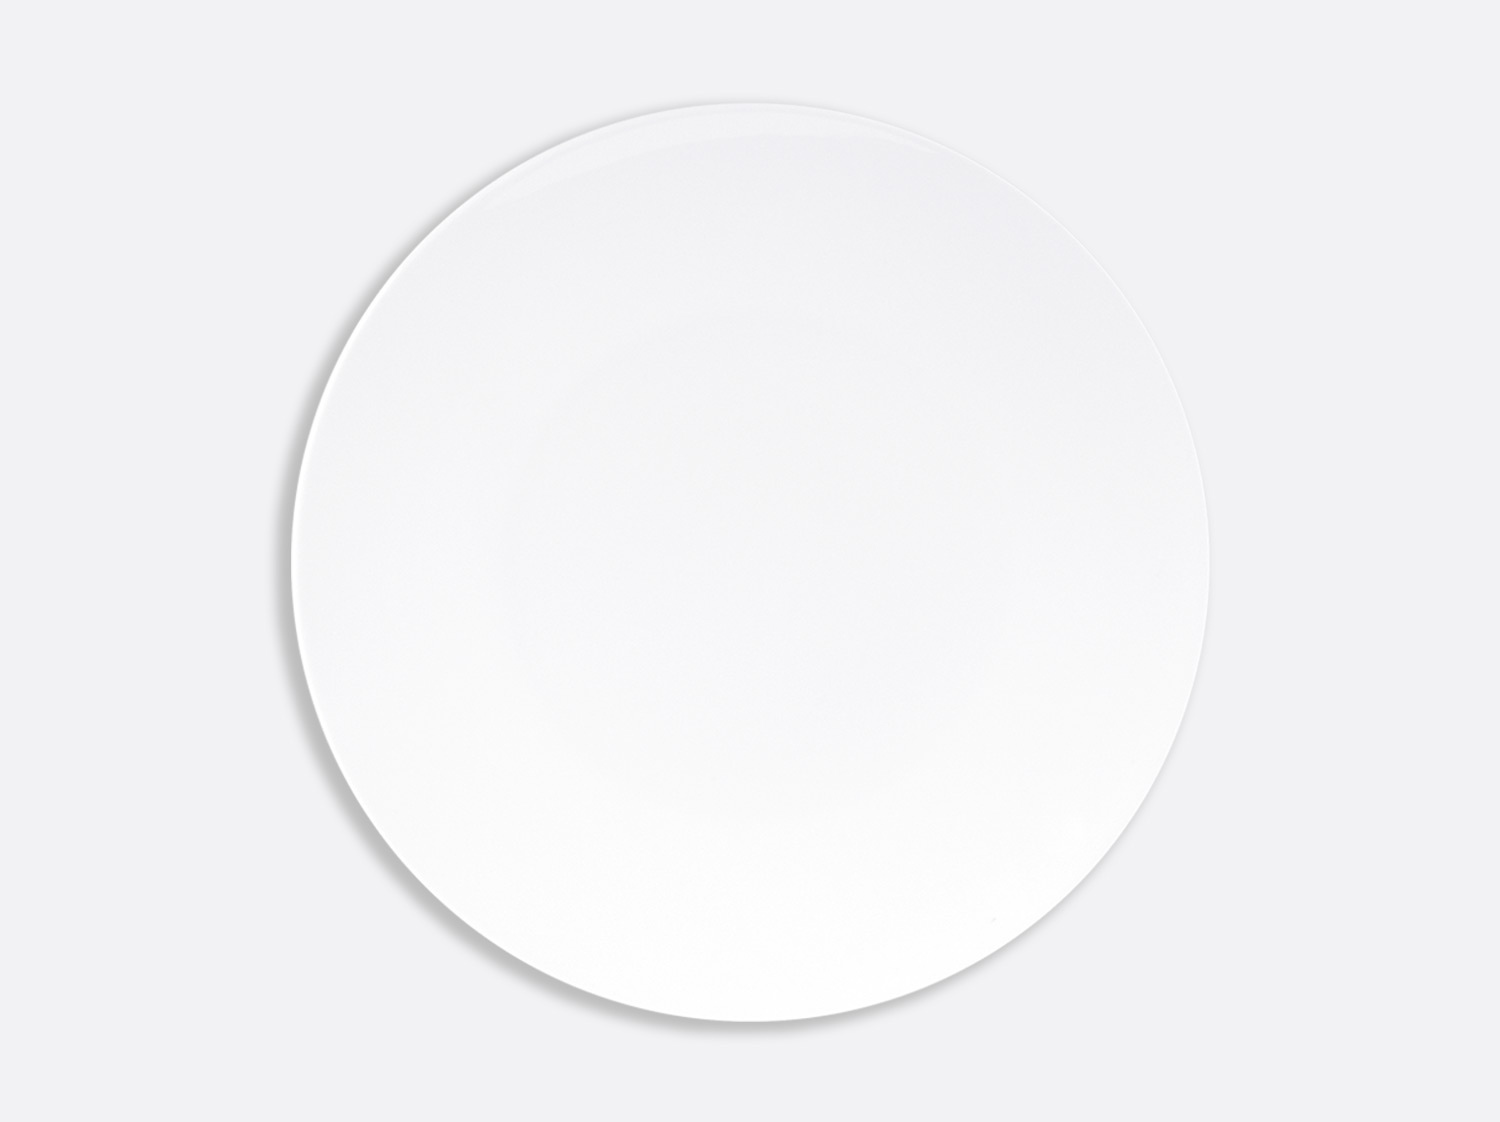 Assiette ultra plate 29,5 cm en porcelaine de la collection DOMUS BLANC Bernardaud